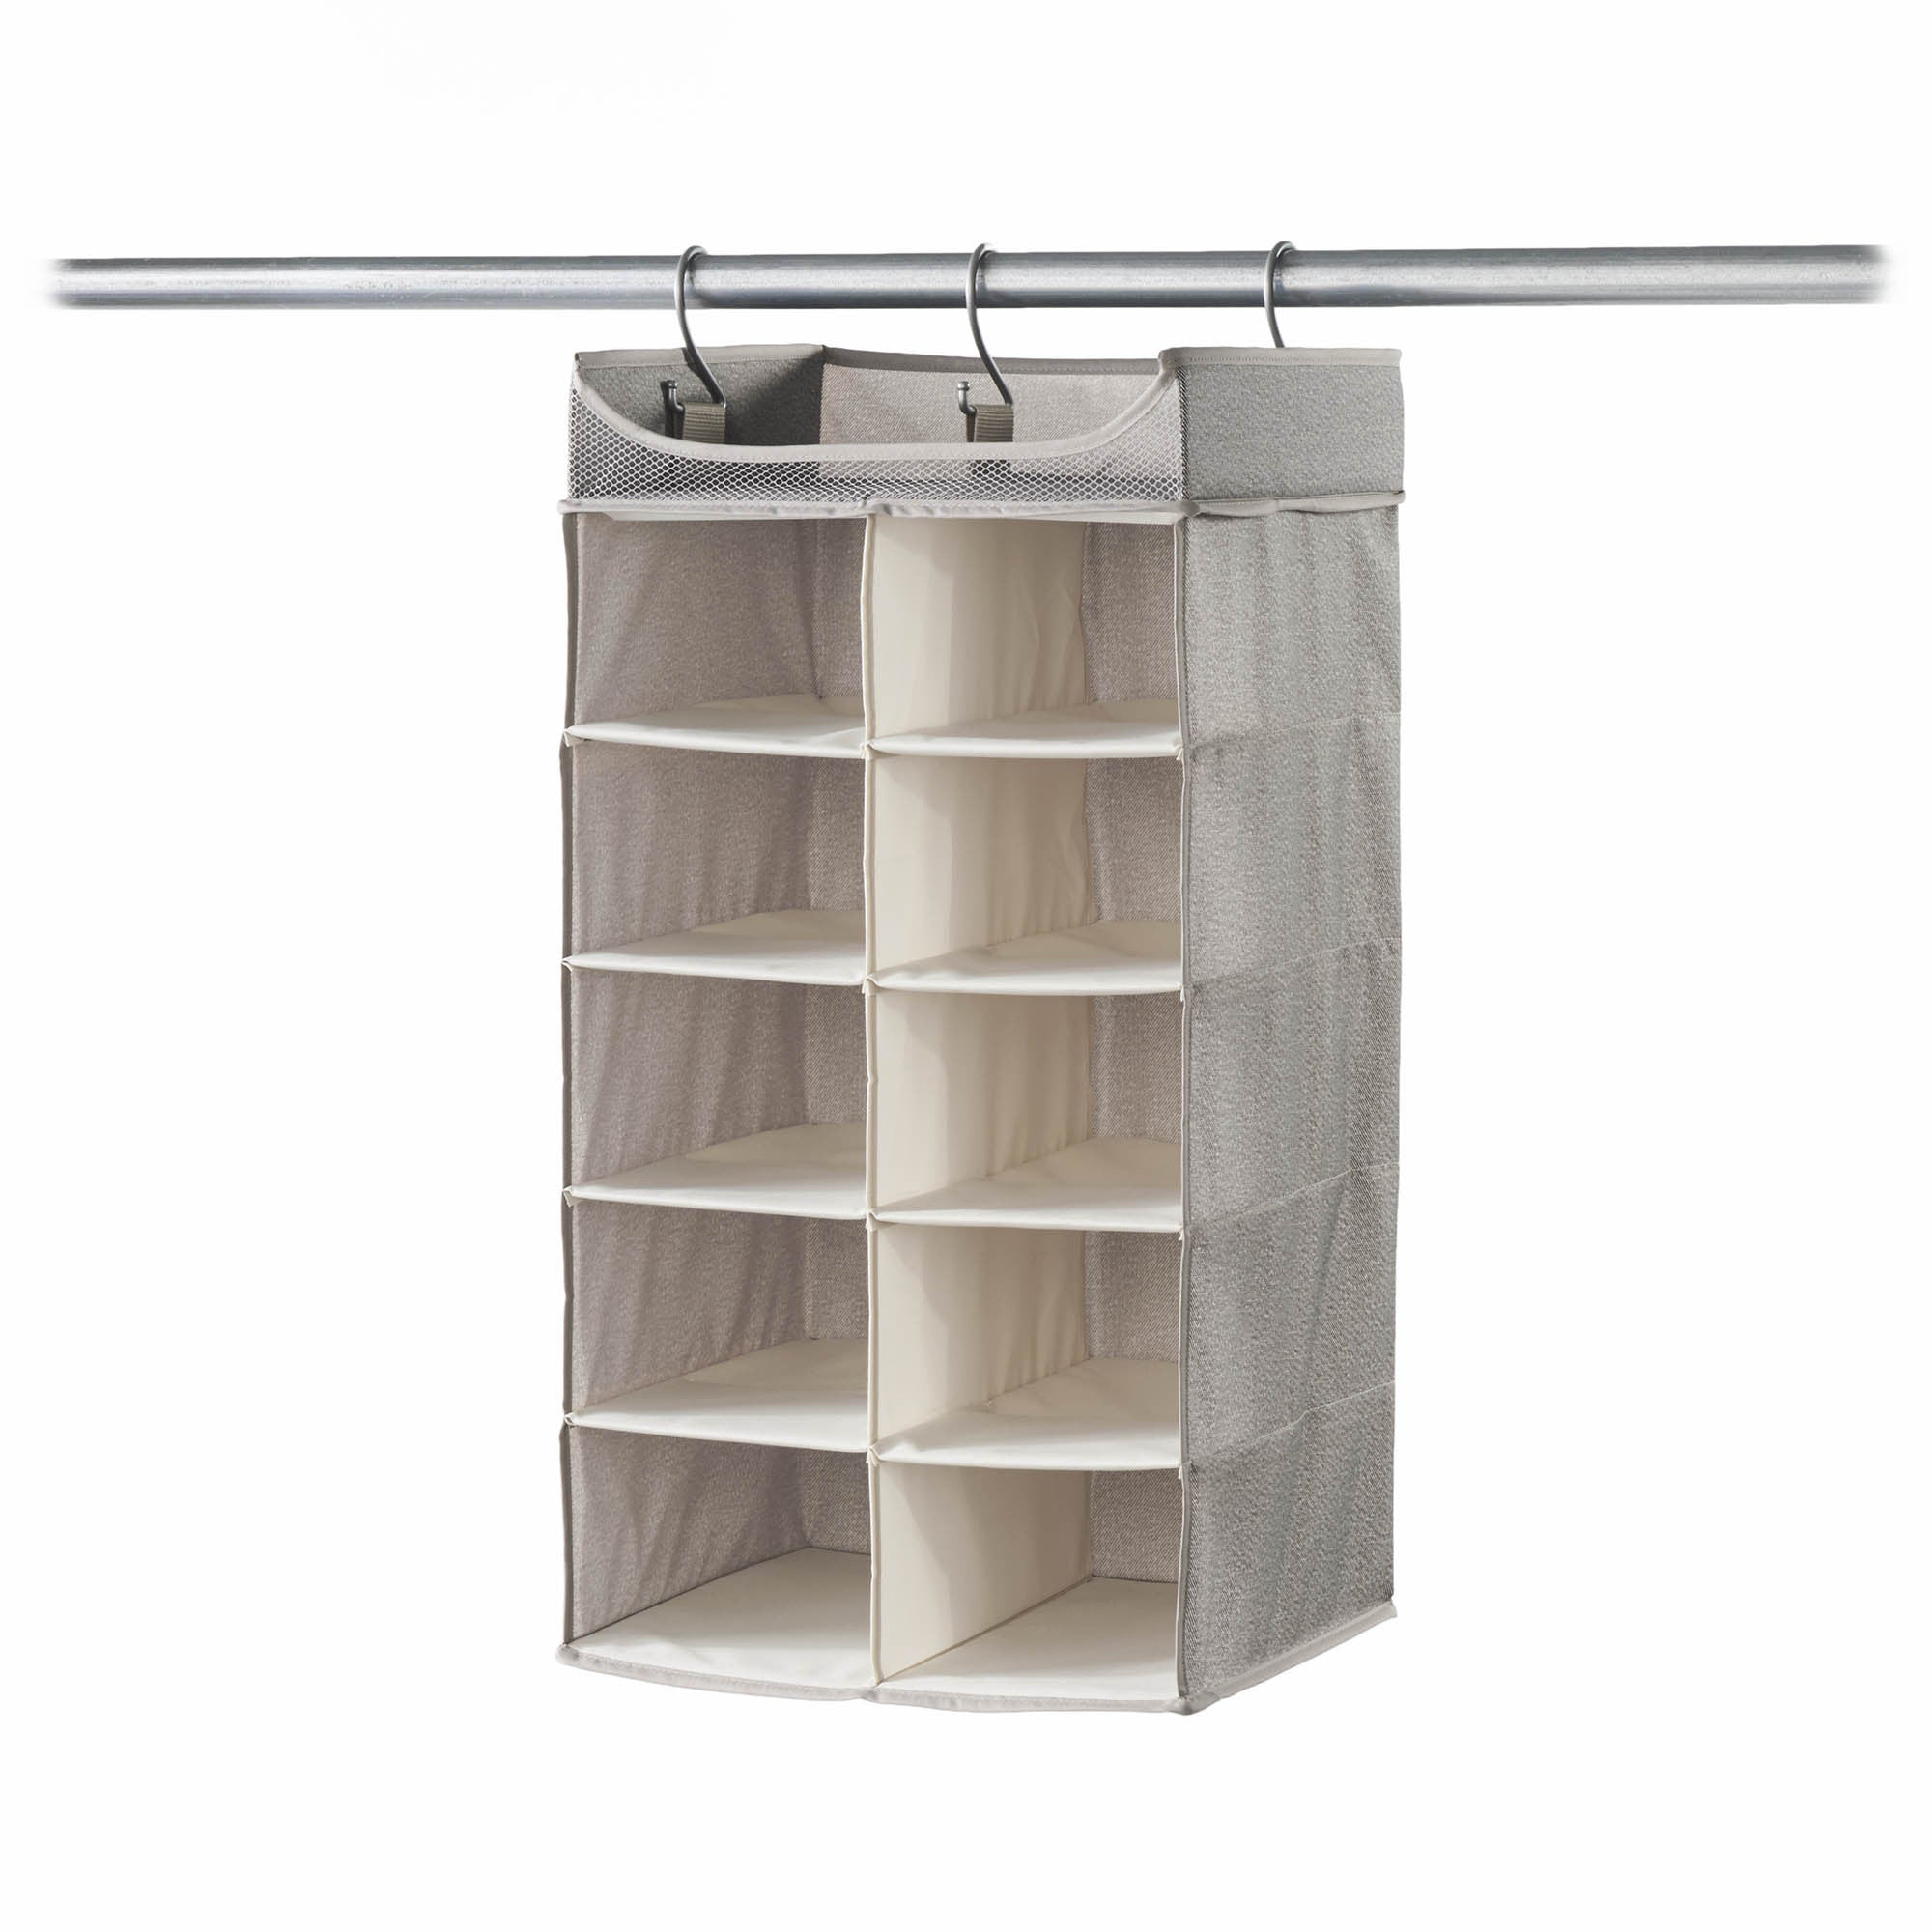 b product shelf shelves zoom racks and in at easy portable up hanging stable